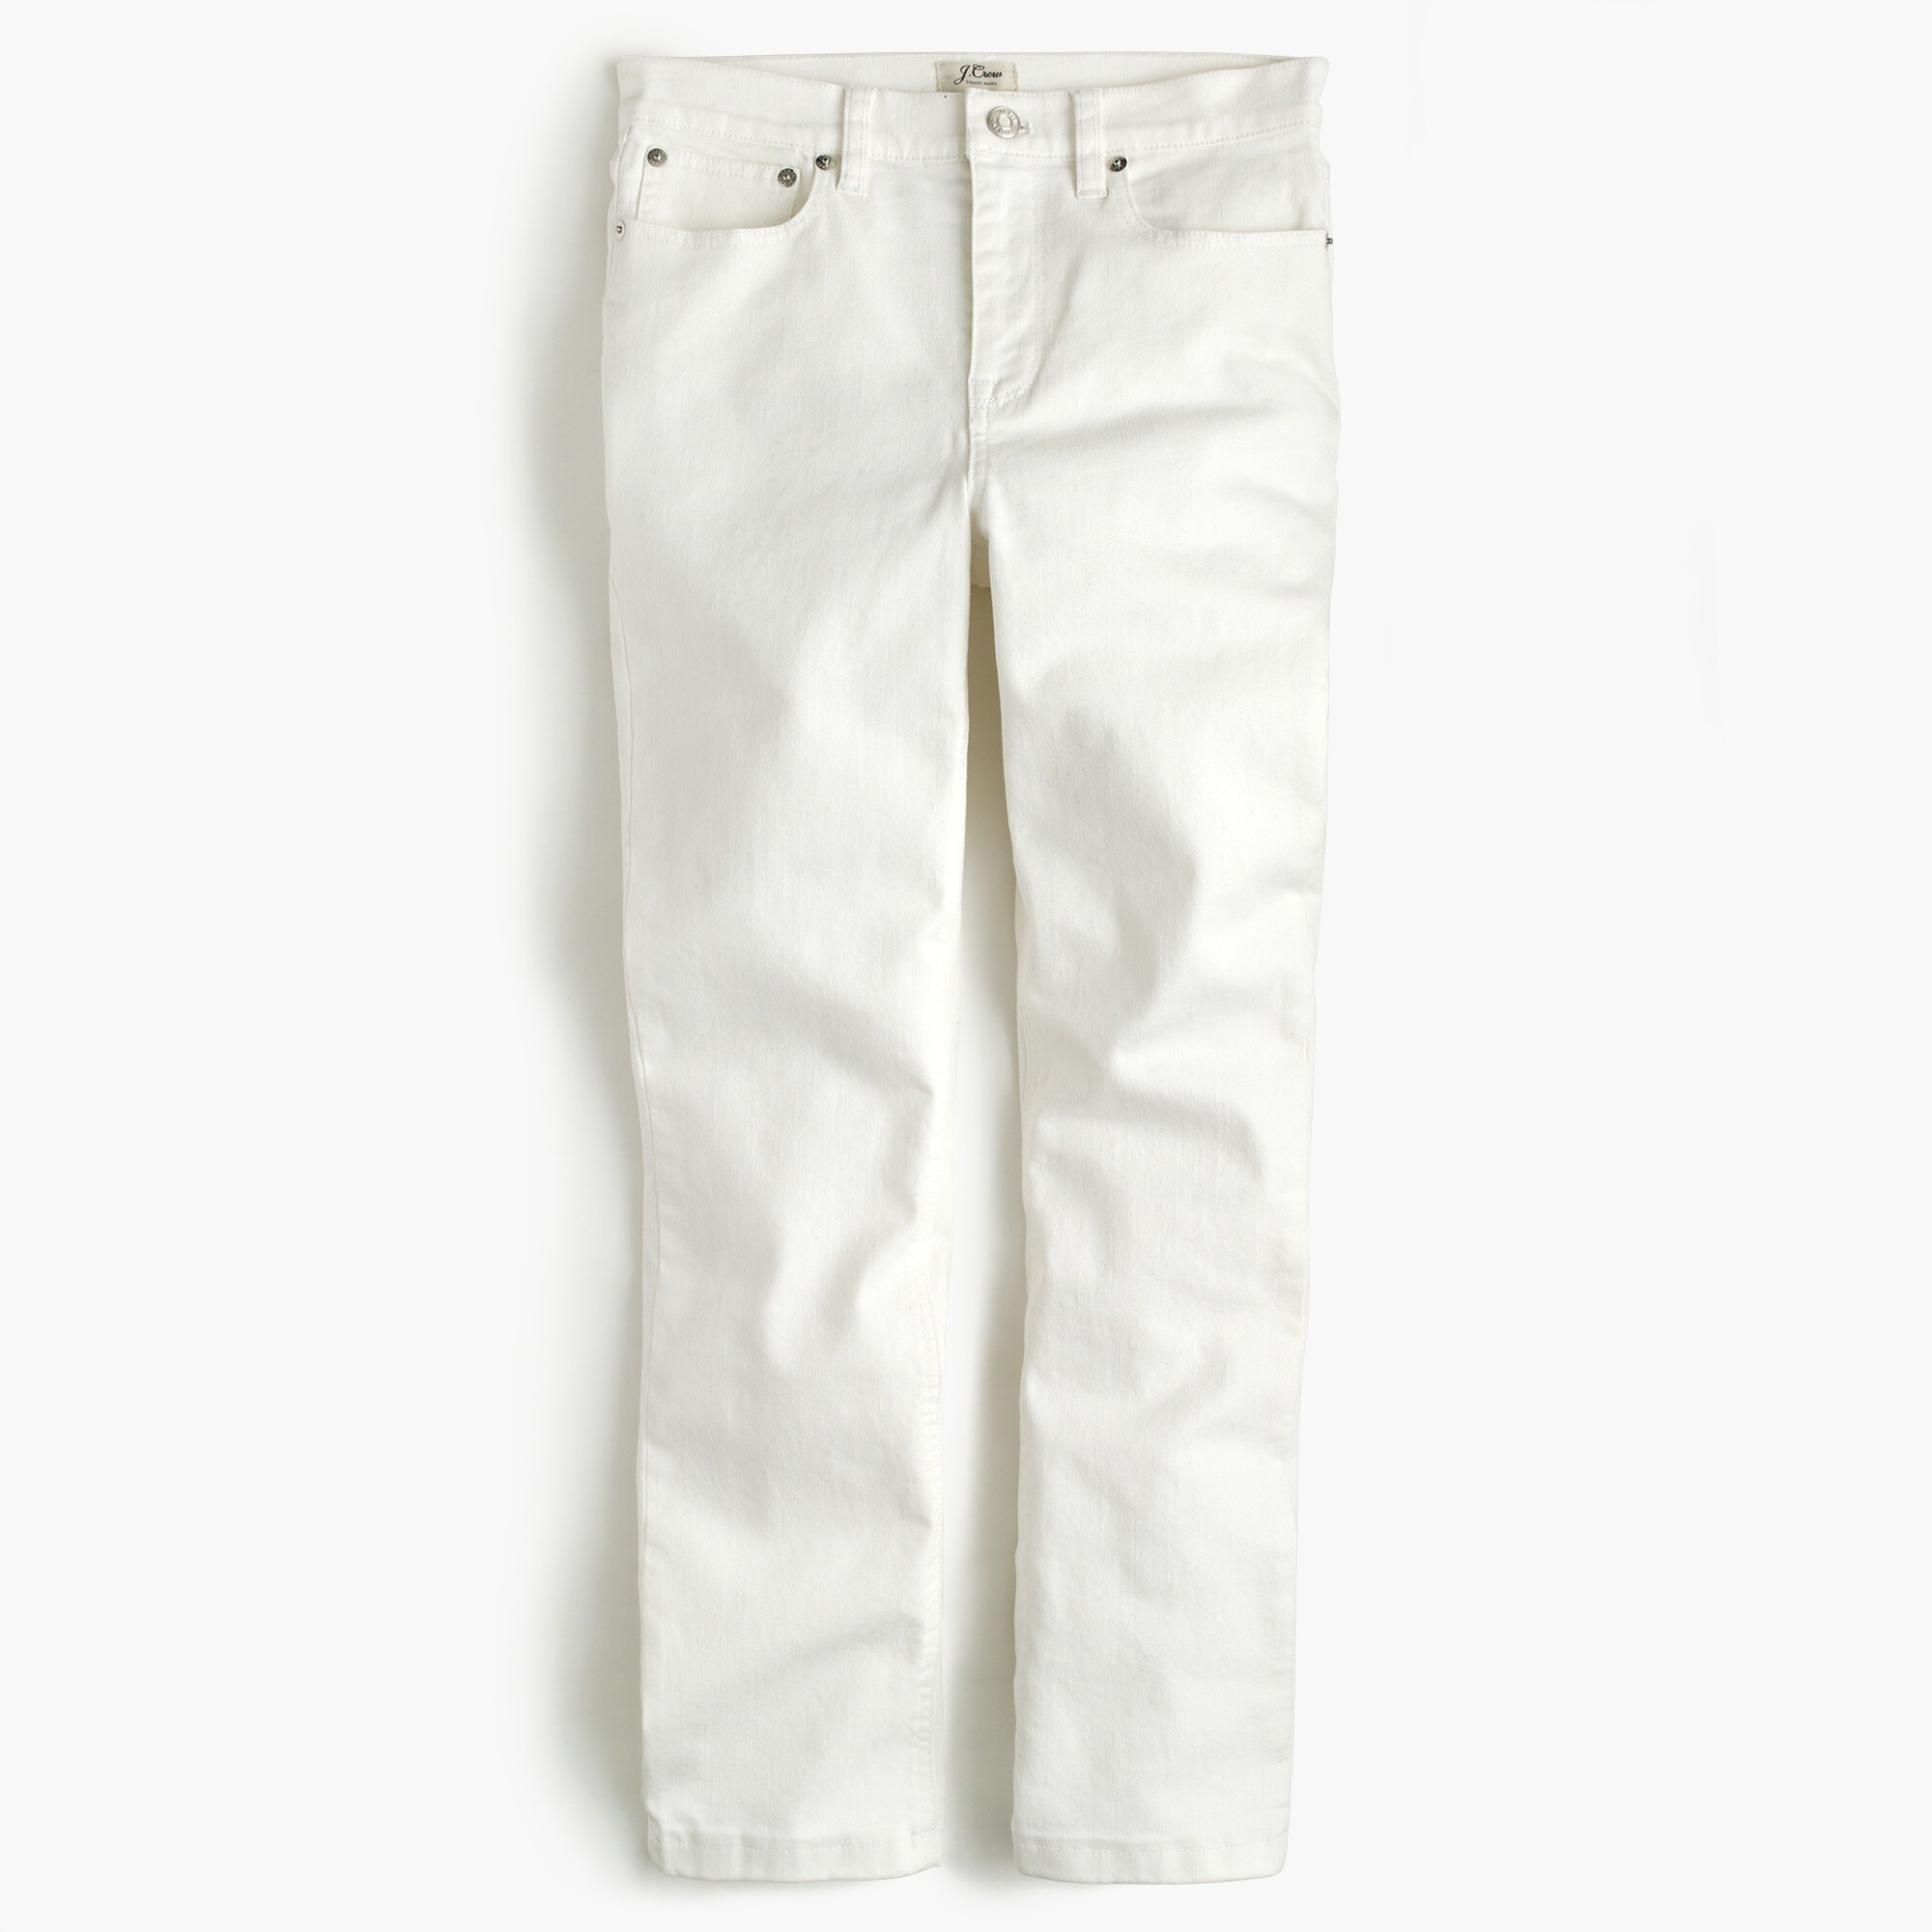 Tall Billie demi-boot crop jean in white